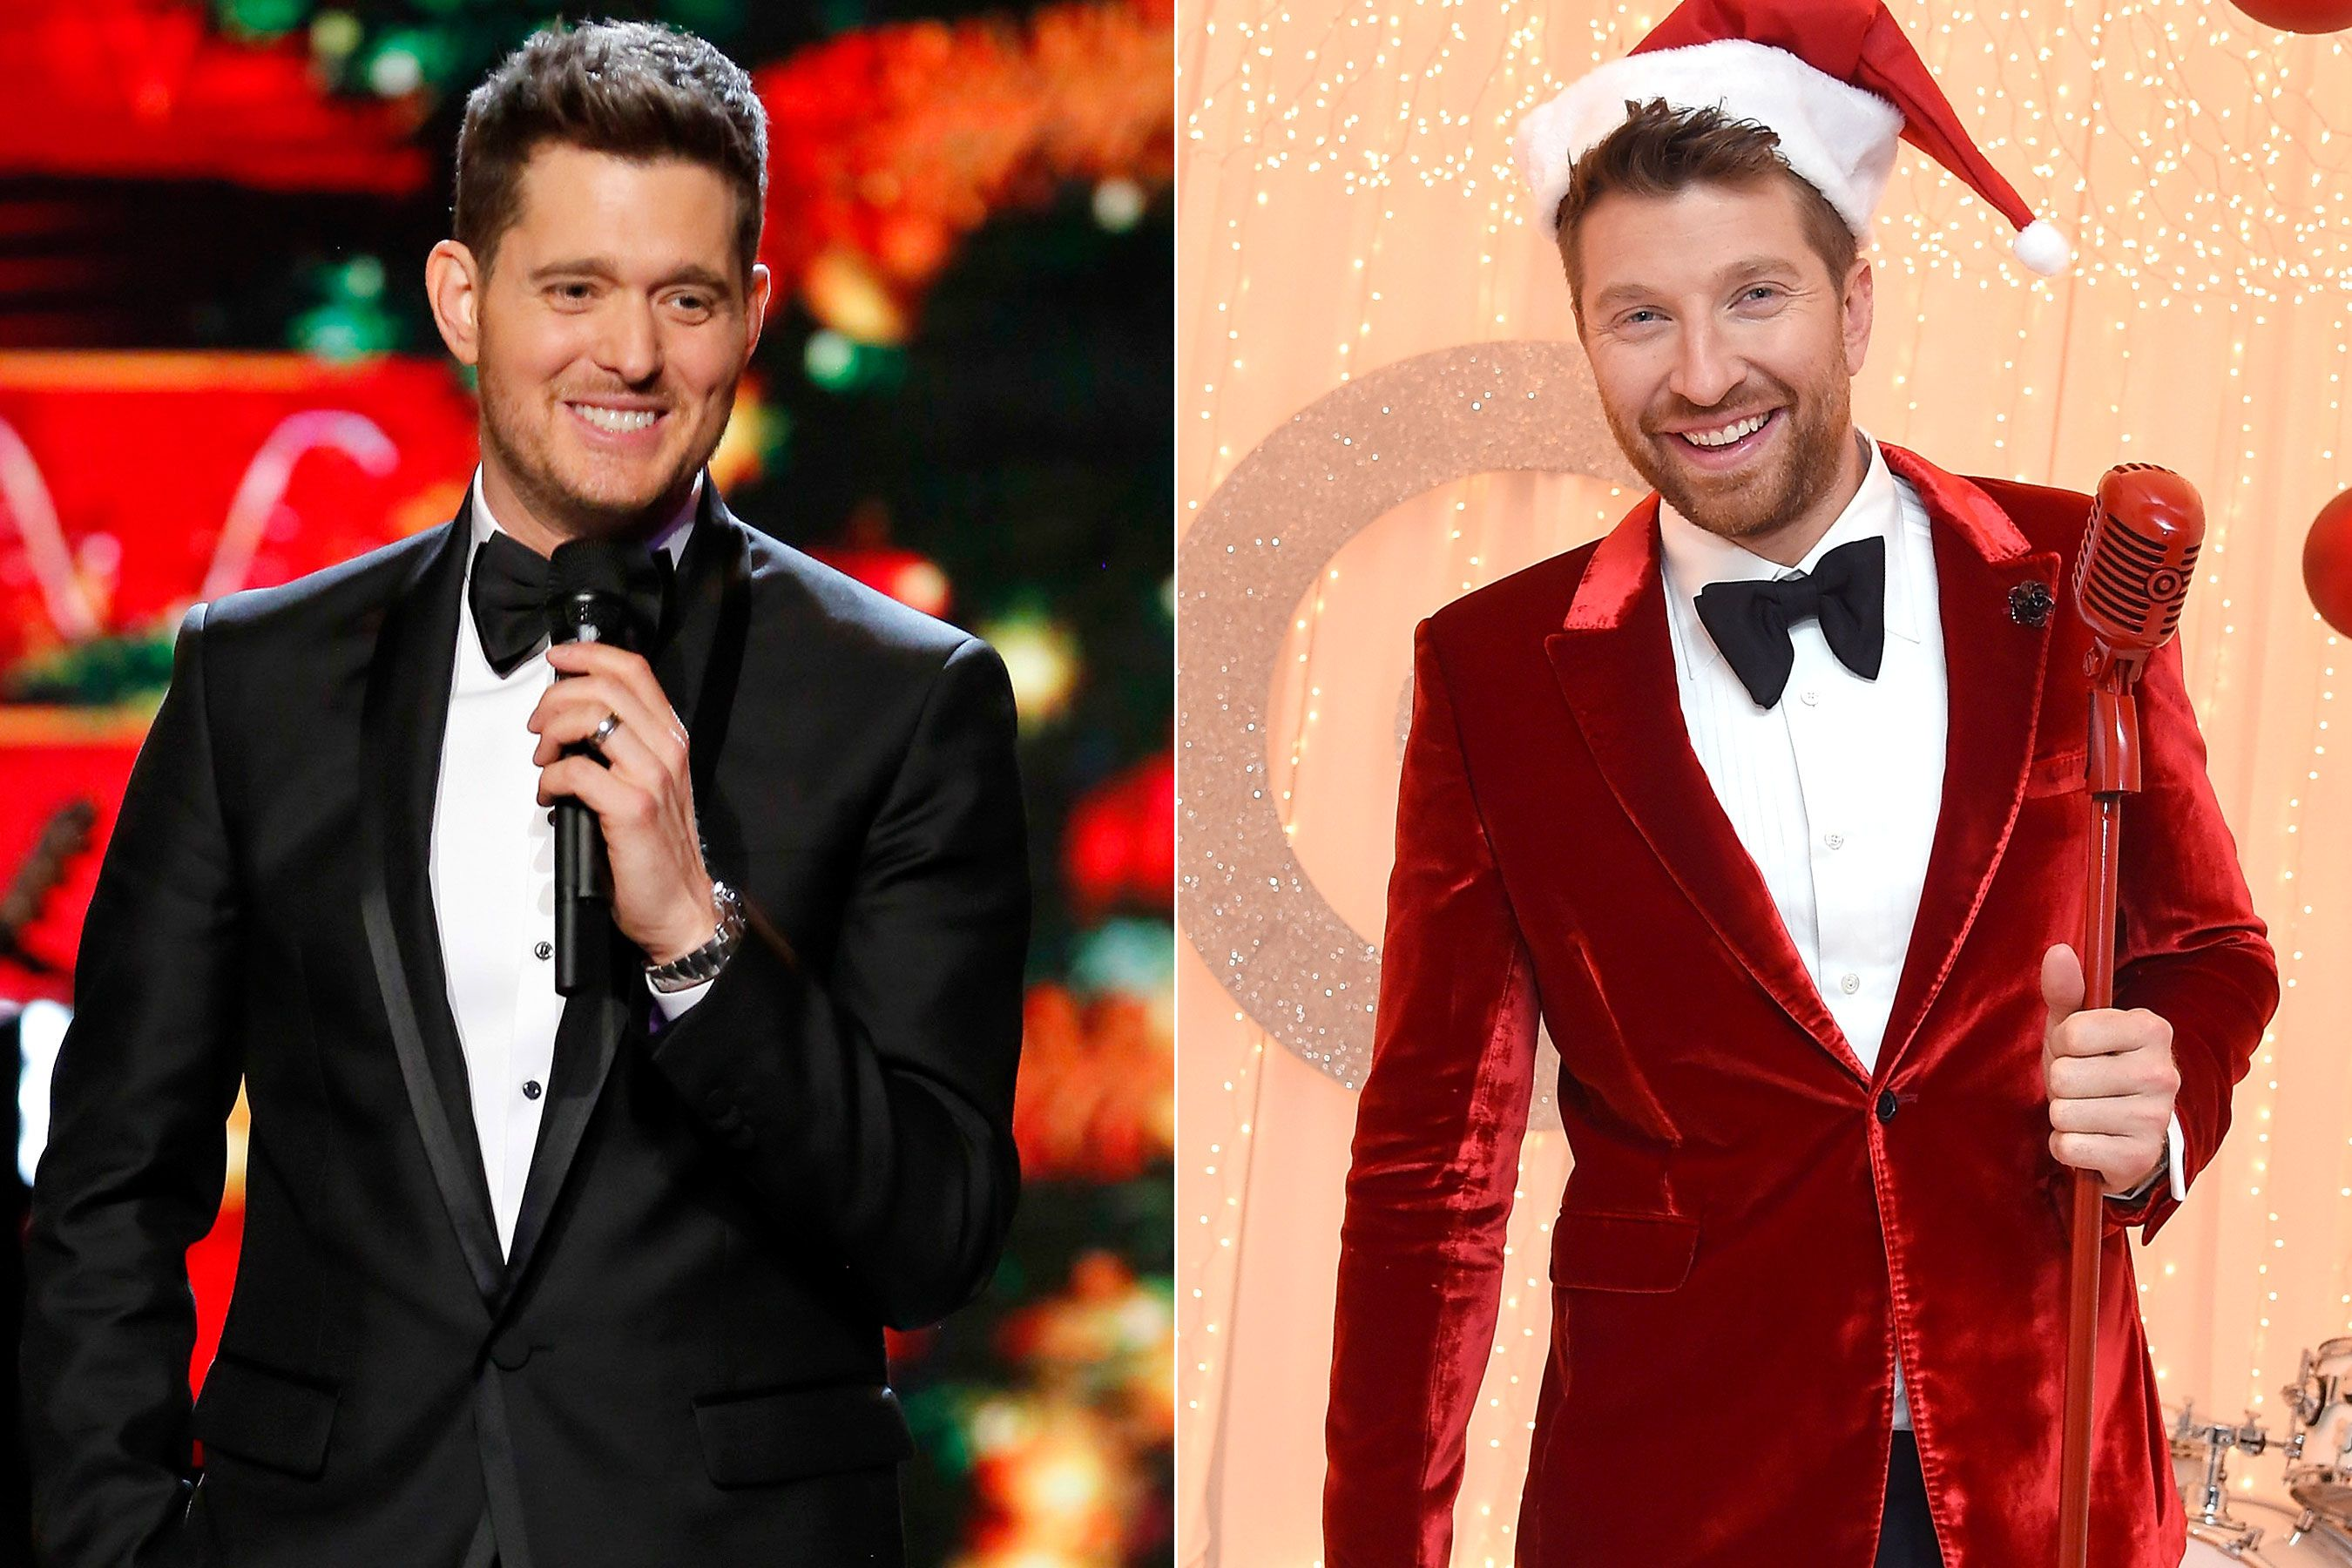 From Brett to Bublé: 'Baby, It's Cold Outside' Remains a Popular Cover Song Despite Controversy ...